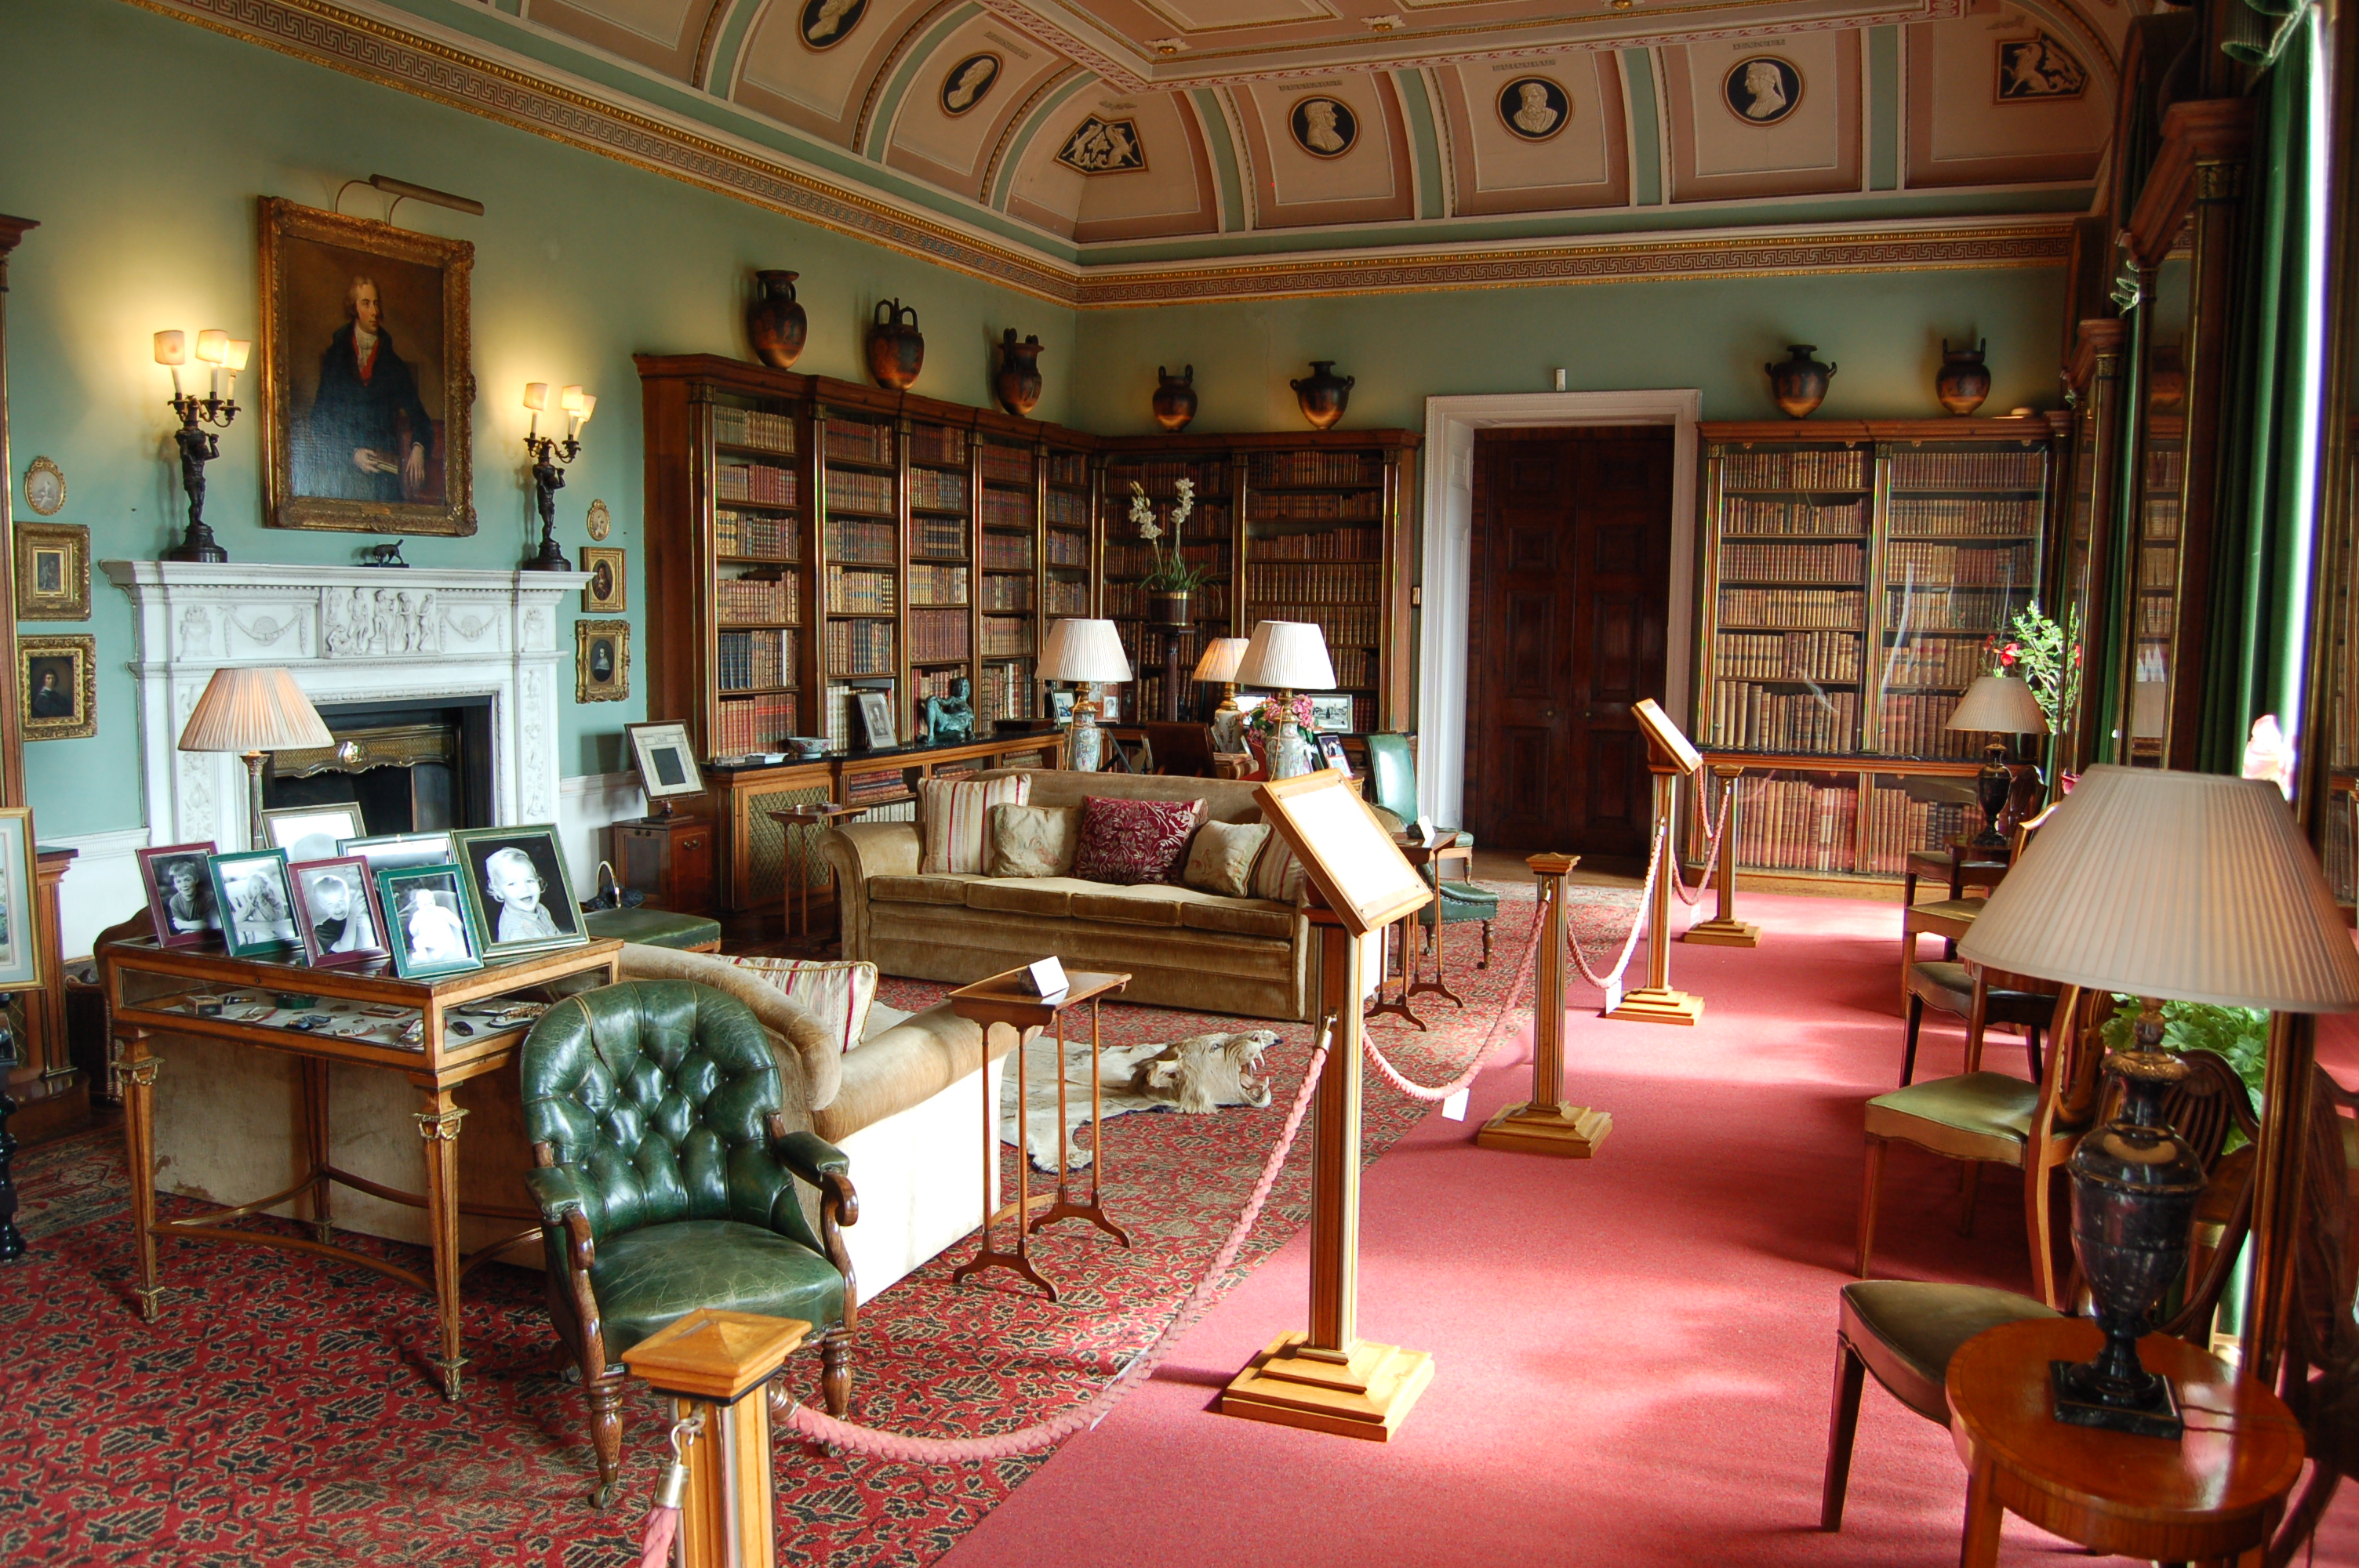 File:Bowood House Library.jpg - Wikimedia Commons